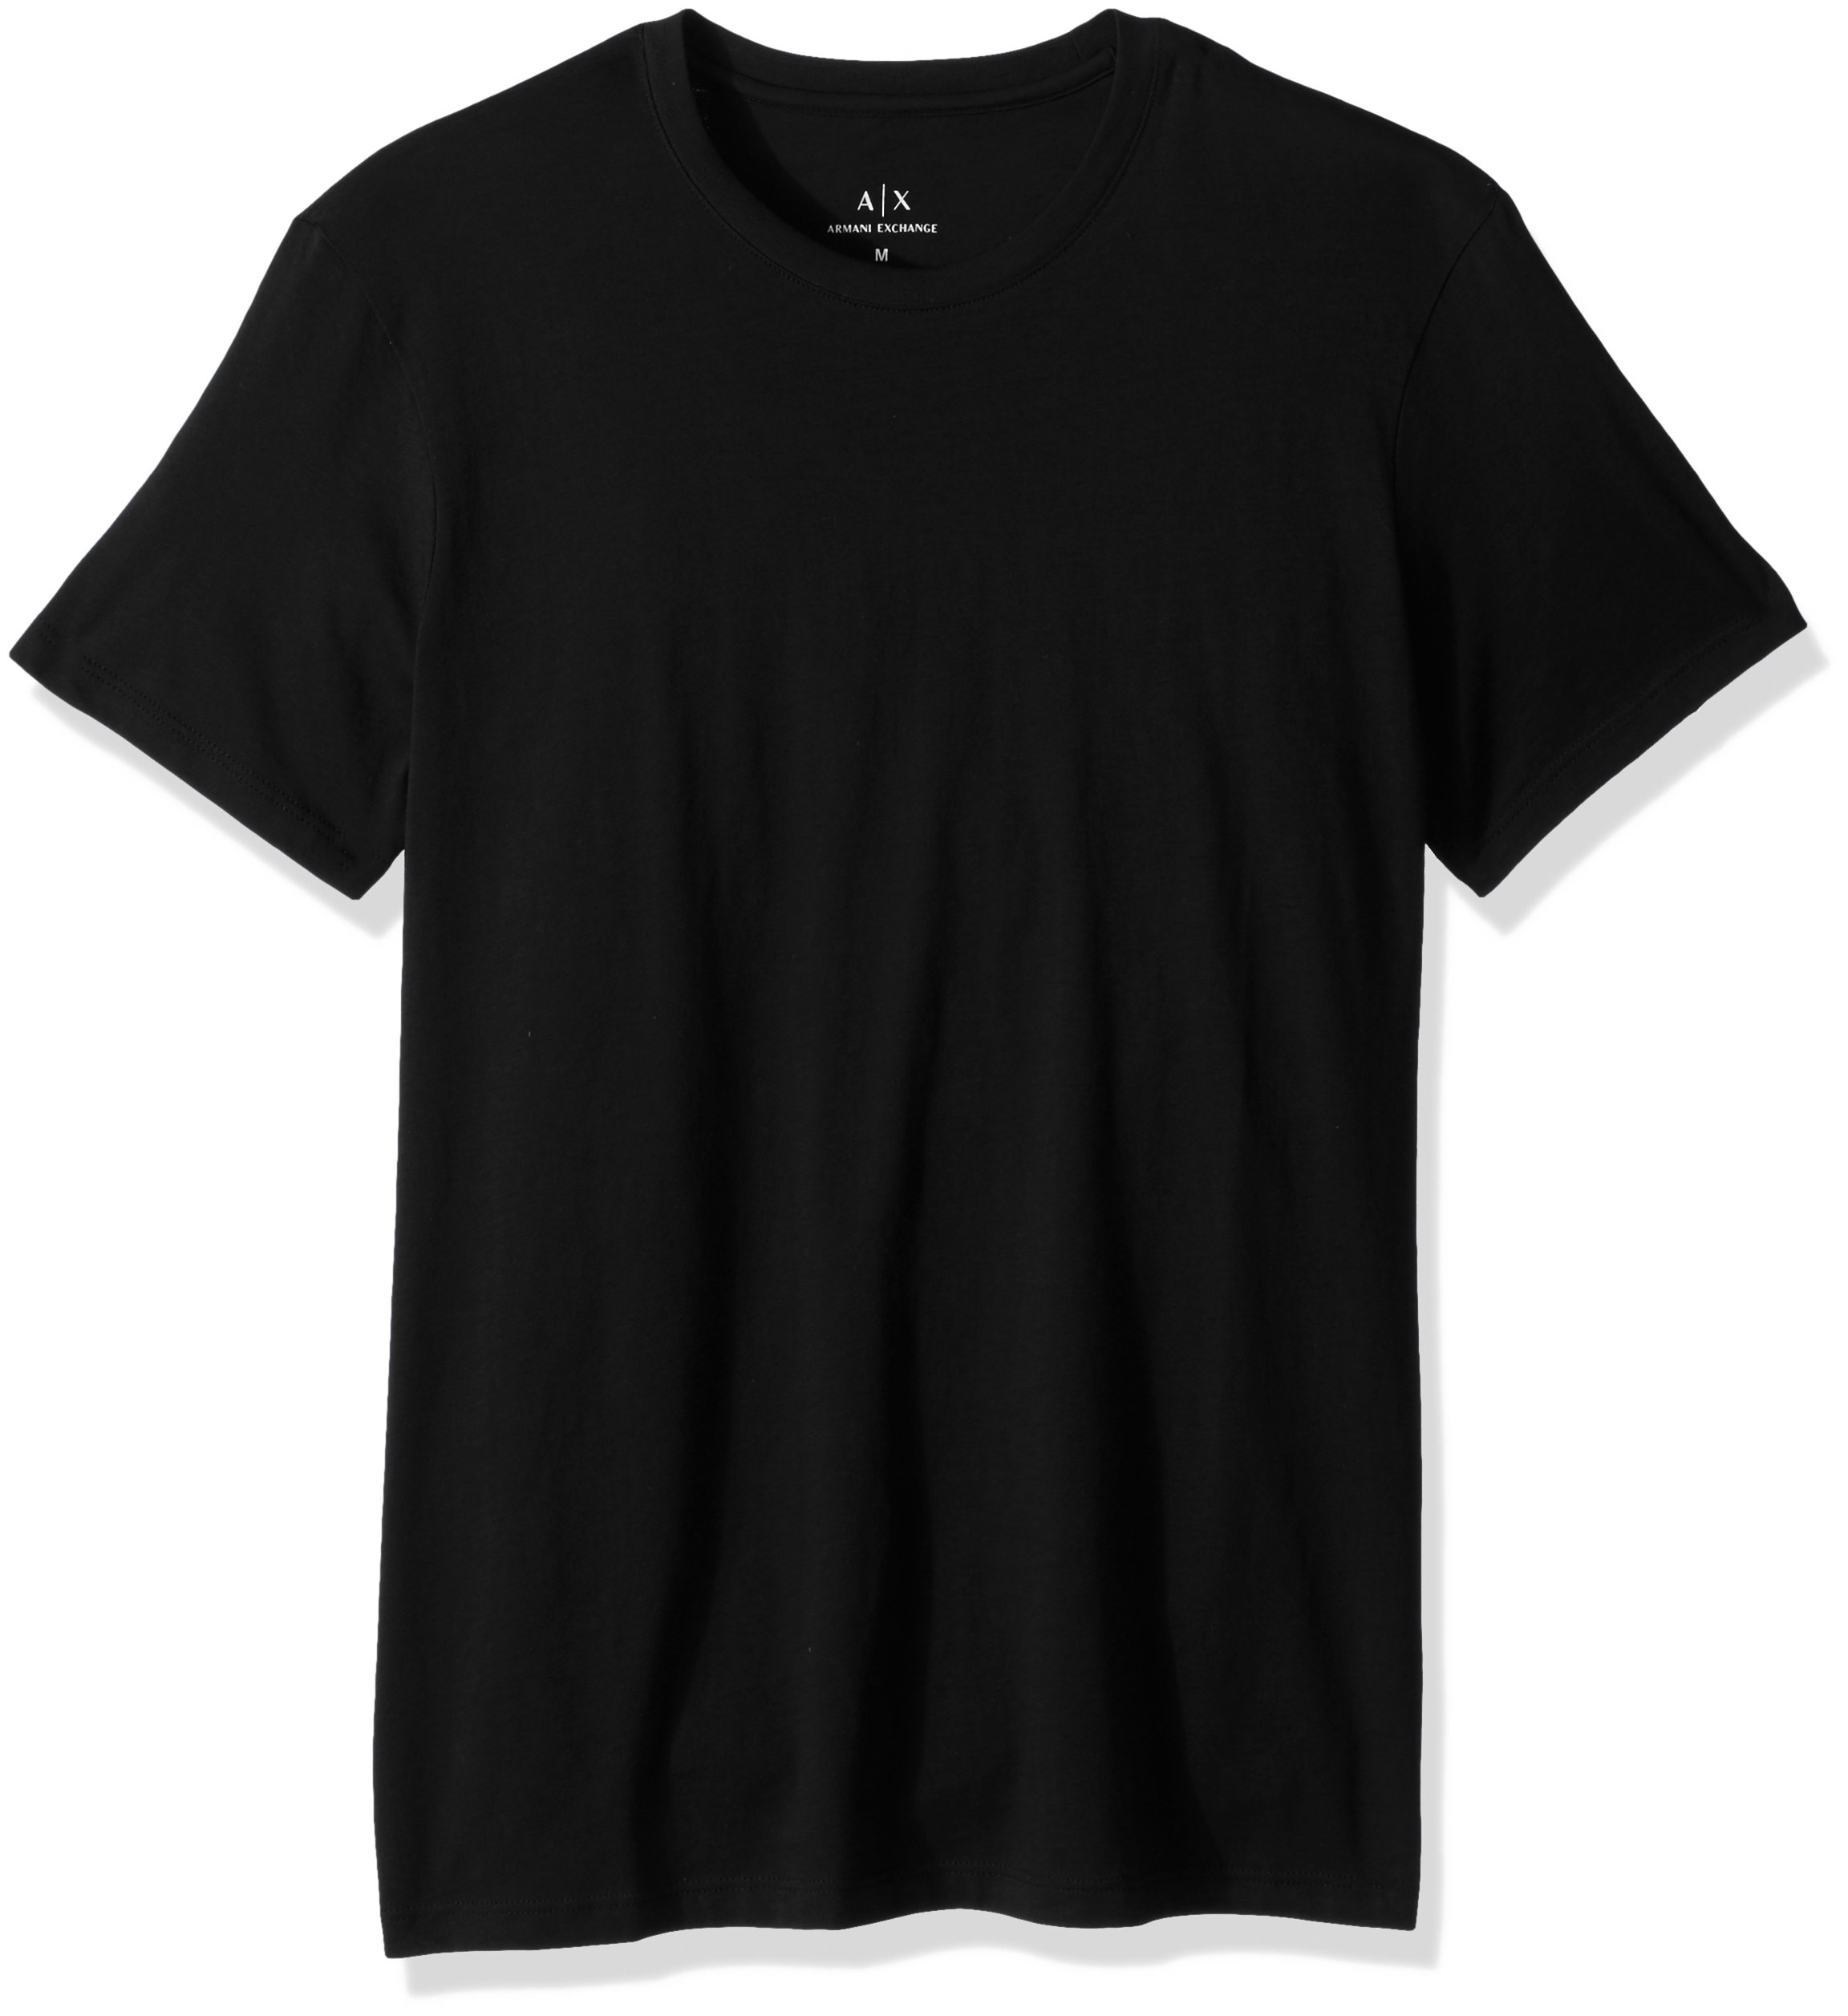 A|X Armani Exchange Men's Classic Cotton Crew tee, Black, XXL